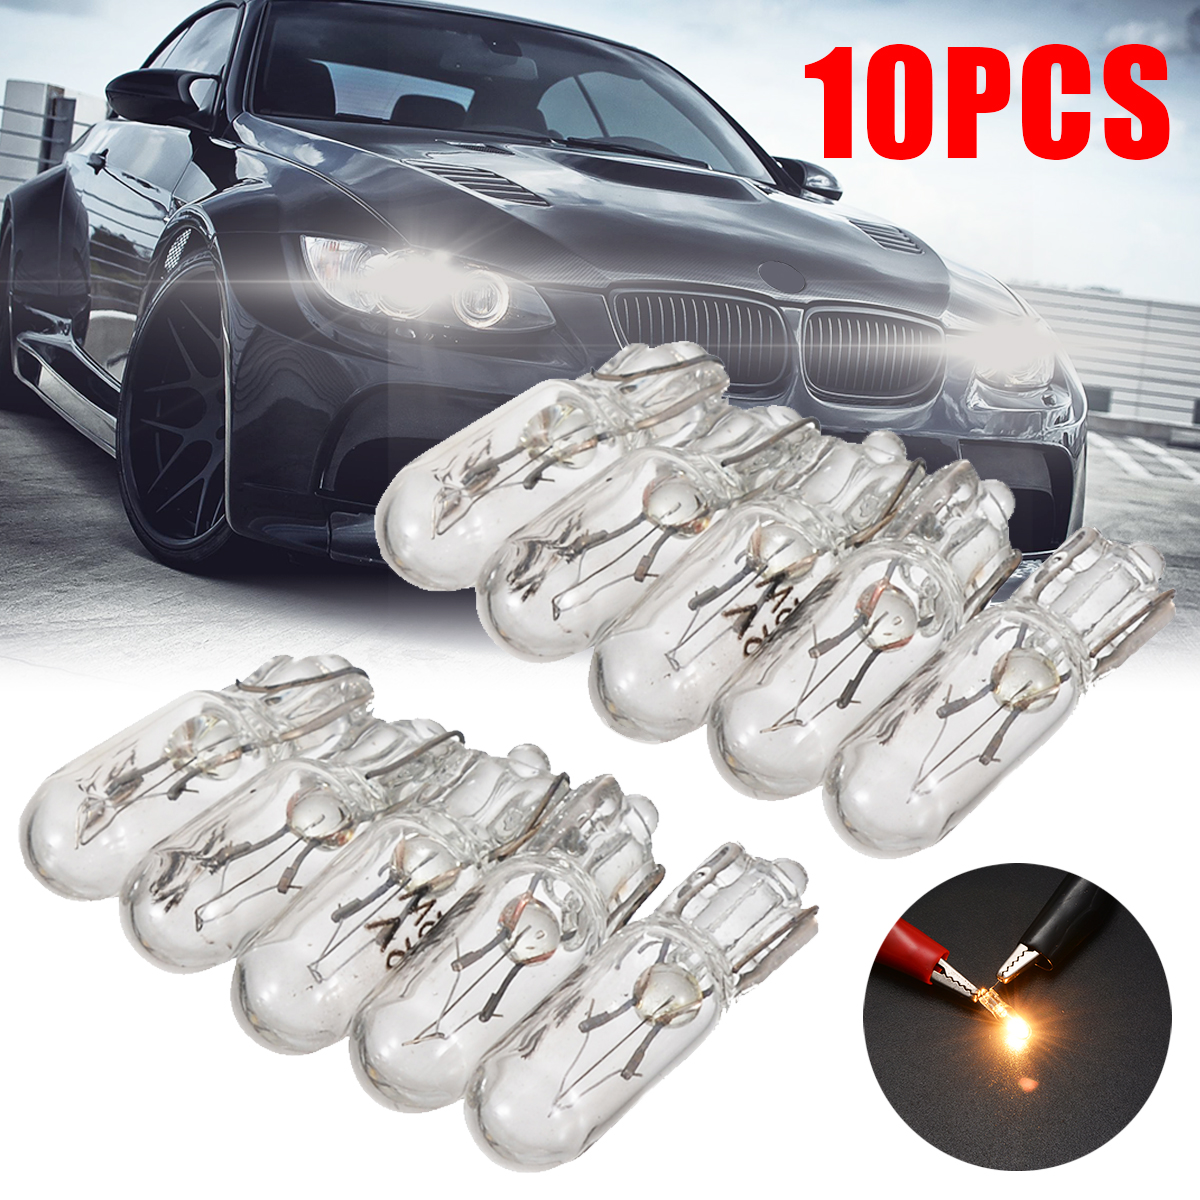 Car Signal Lamp 10pcs <font><b>T5</b></font> 286 Glass Light Bulb High Brightness Amber Car Clear Wedge Dashboard Instrument Panel Brake Lights image